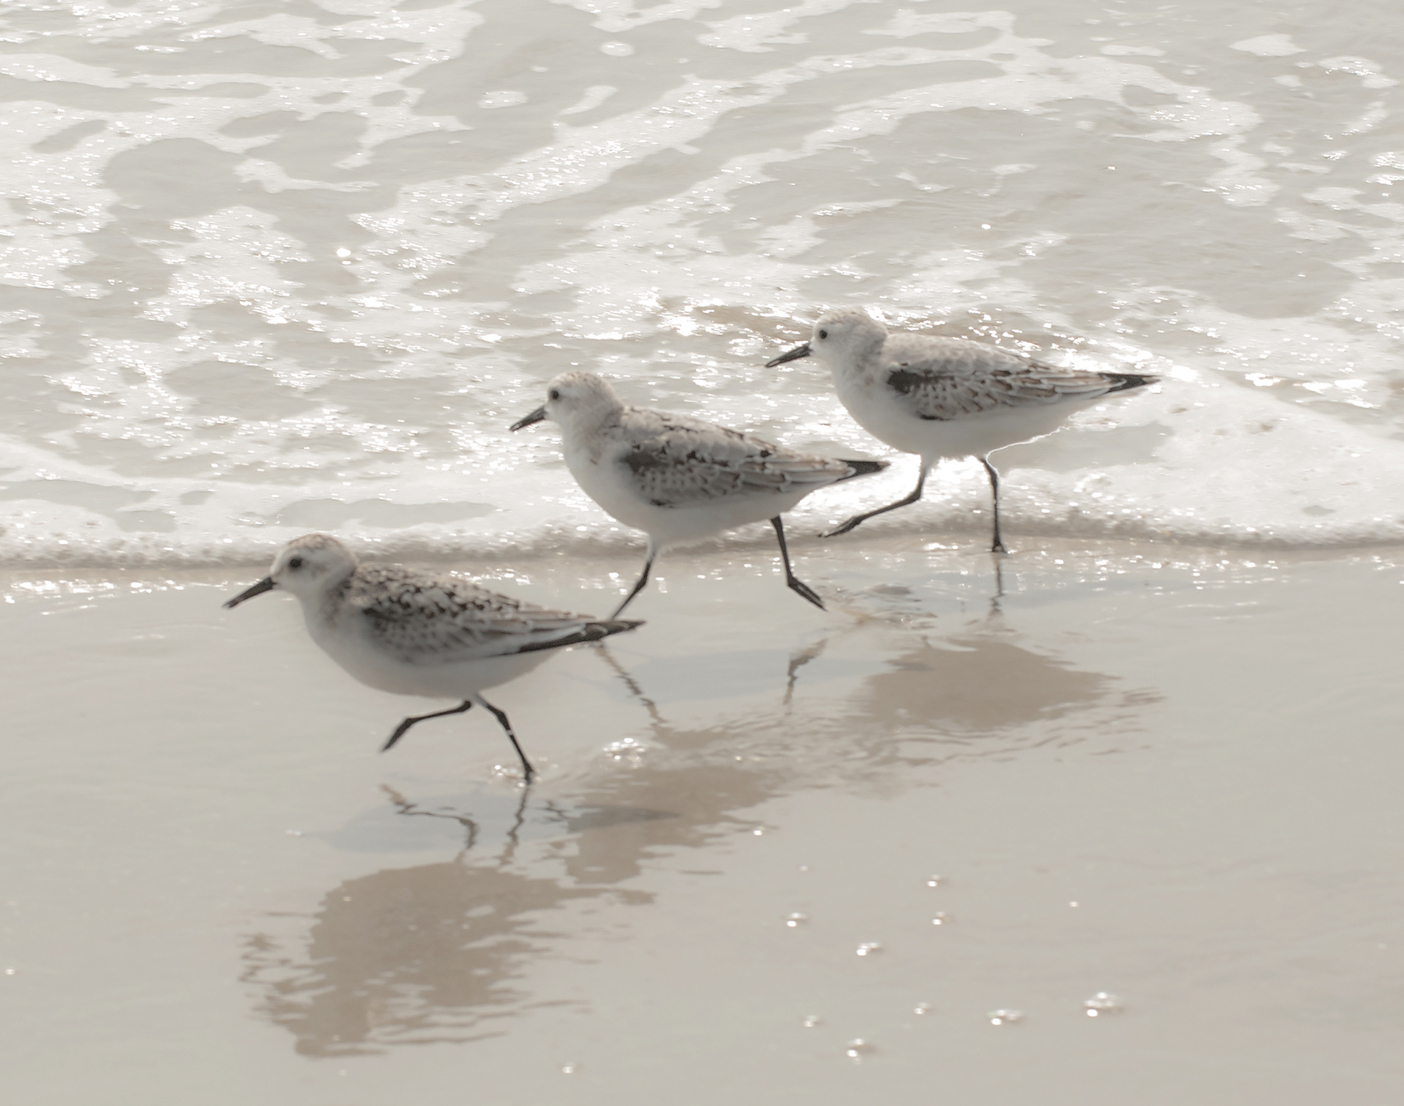 Andrea Sharon: Three Sandpipers Running